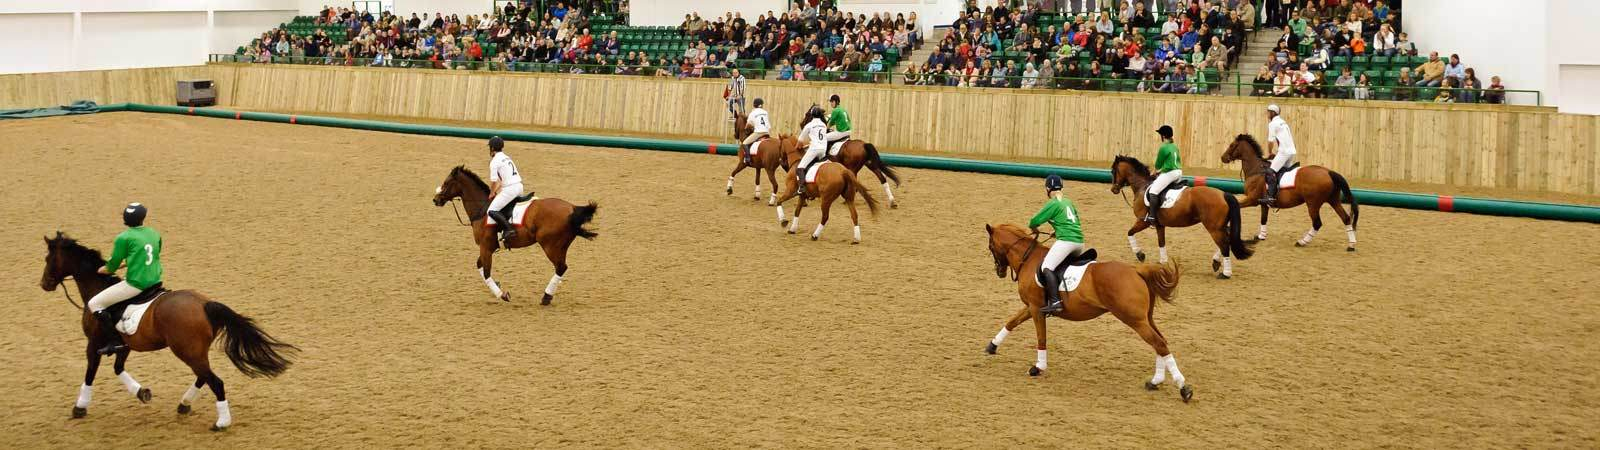 Horseball match takes place at Bishop Burton Equine Arena